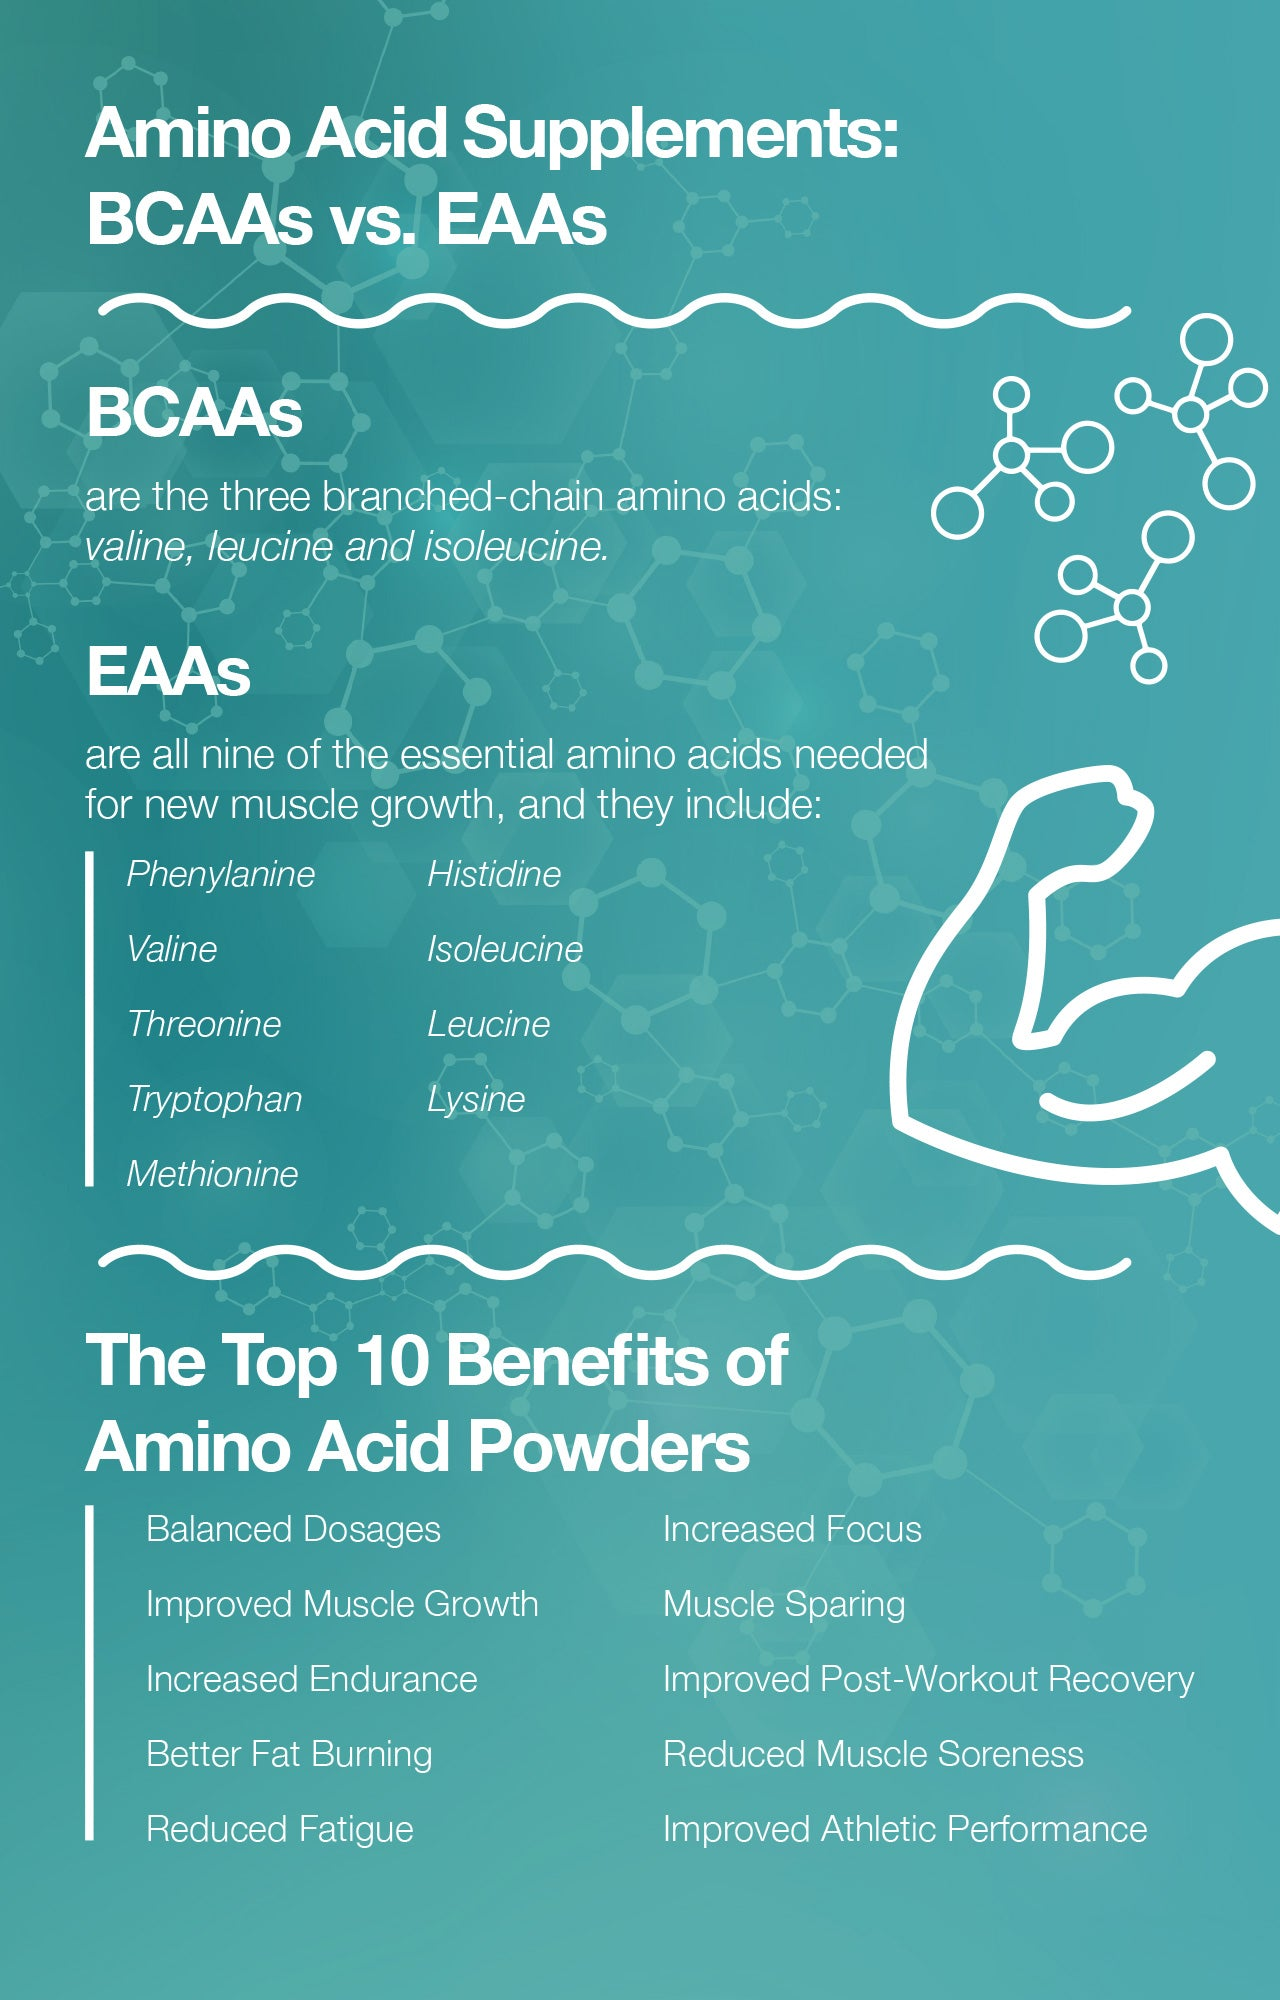 Top 10 benefits of amino acid powders.